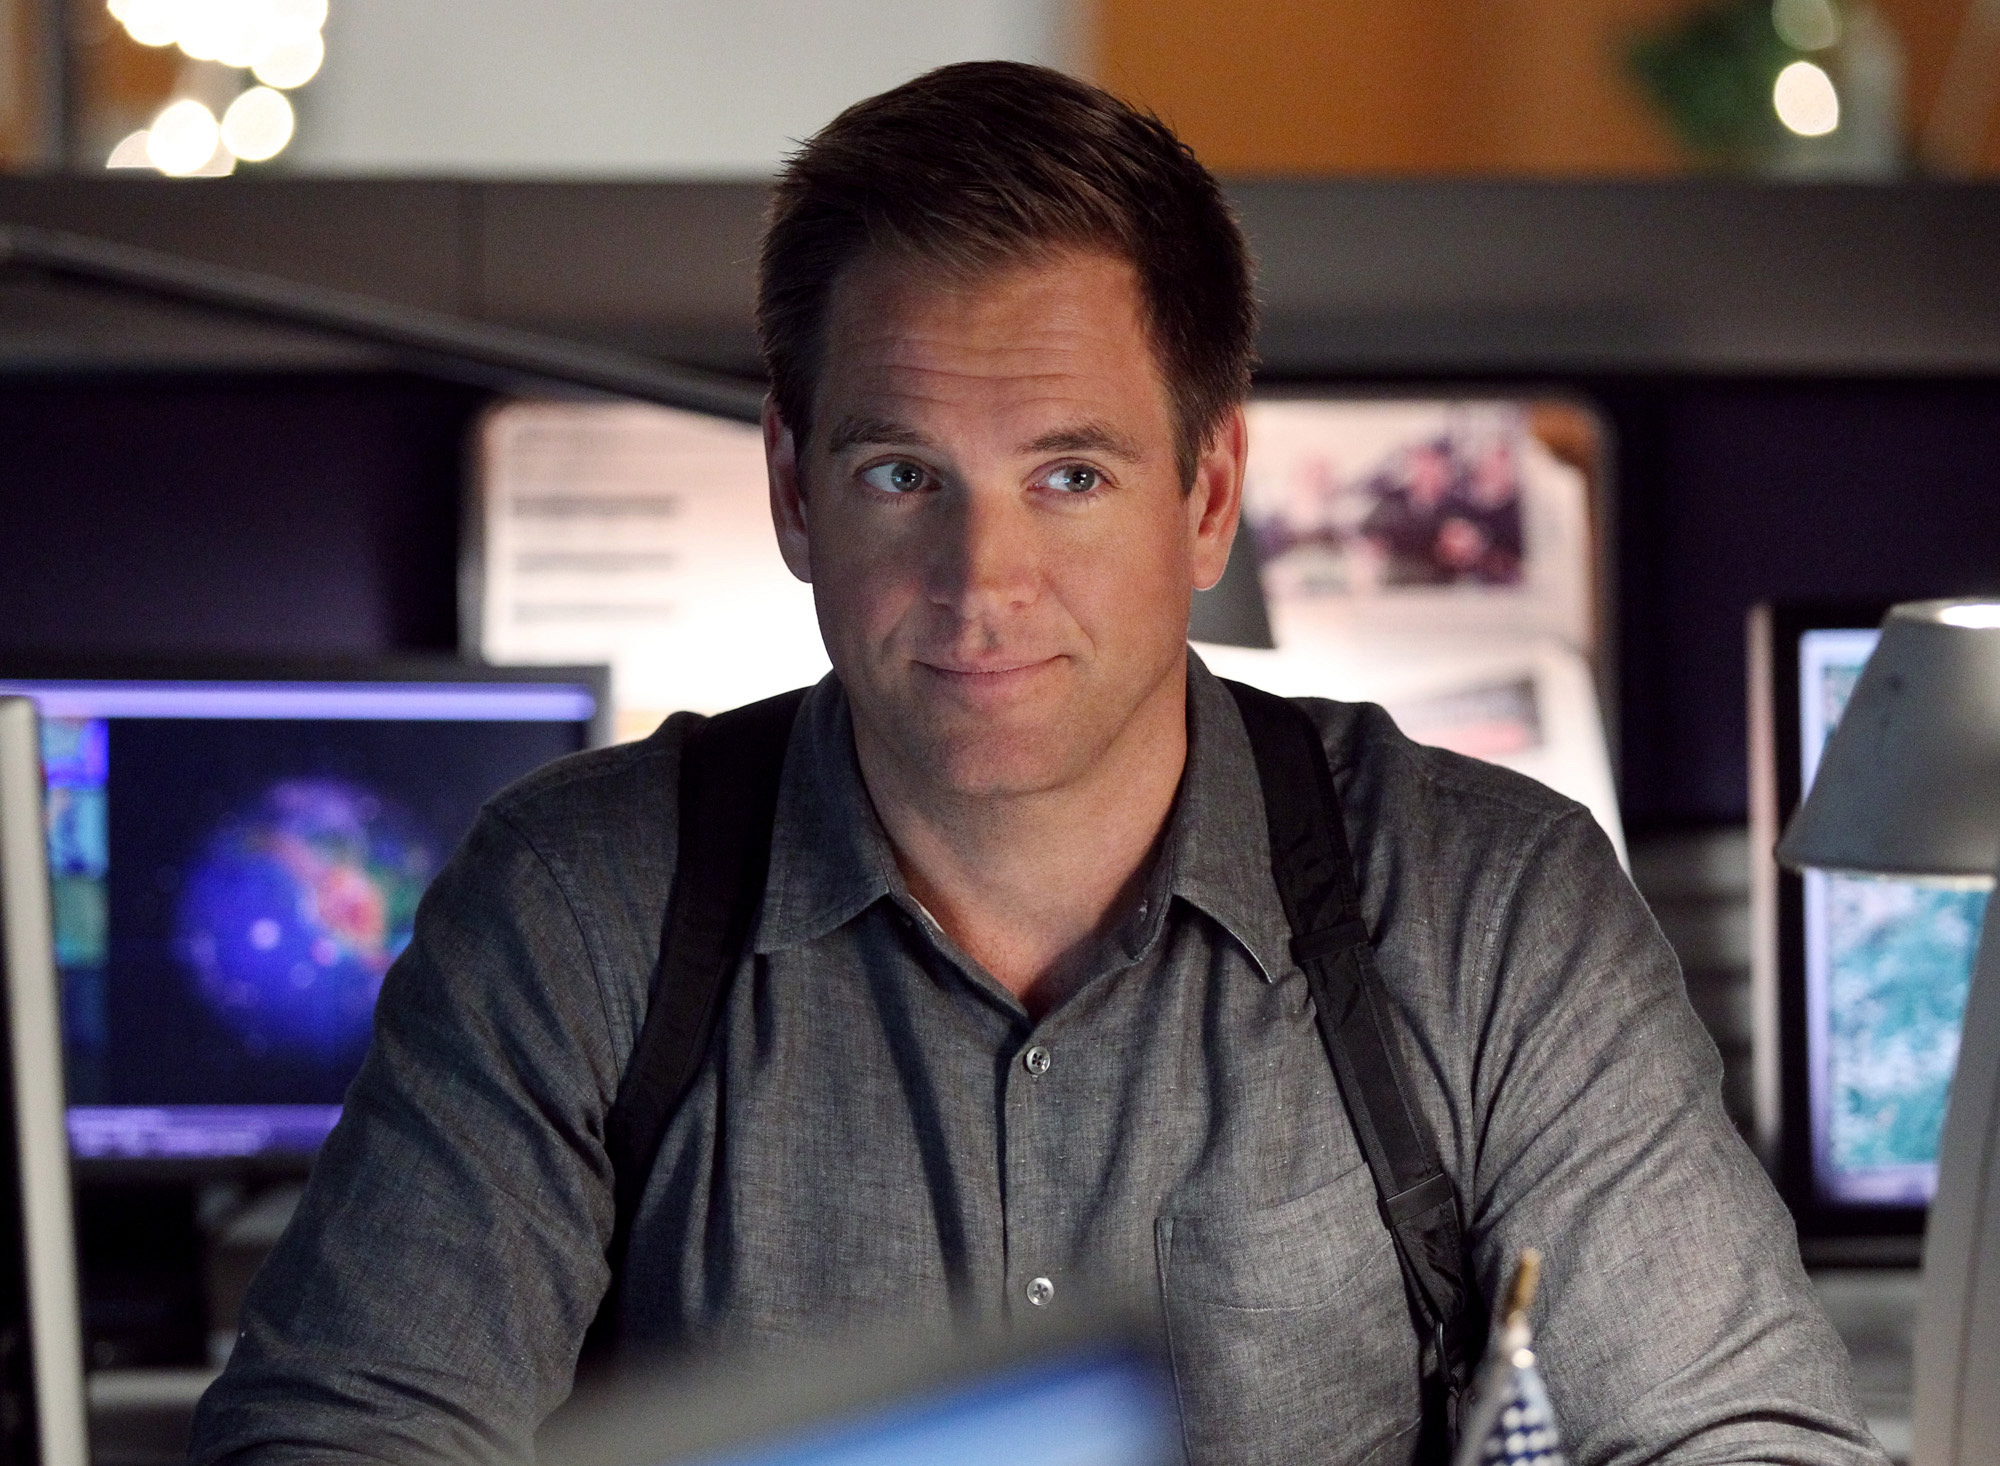 Naughty - Tony DiNozzo from NCIS